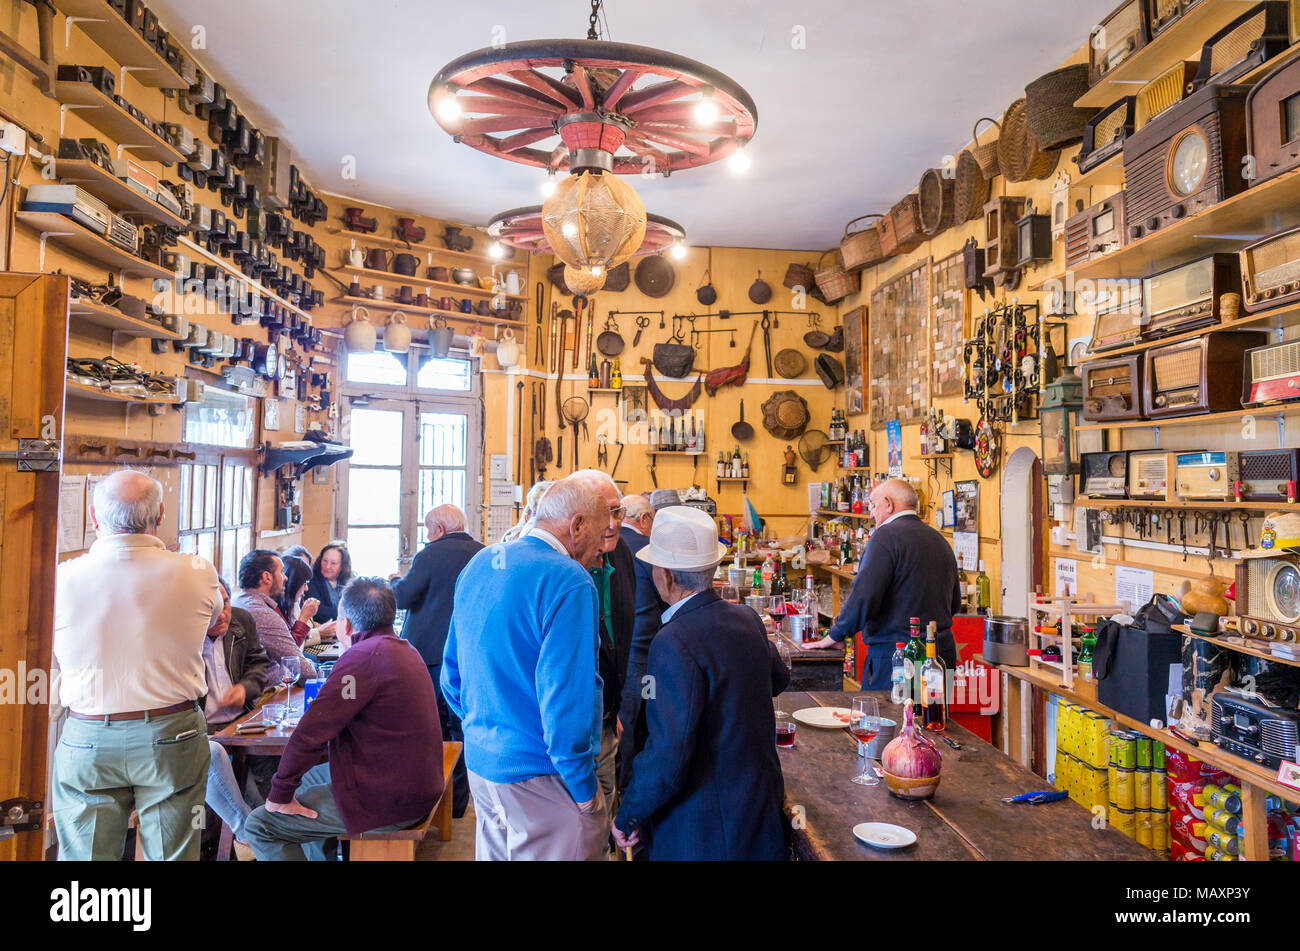 Interior of a bar in a village in Castile and Le—n, Spain - Stock Image